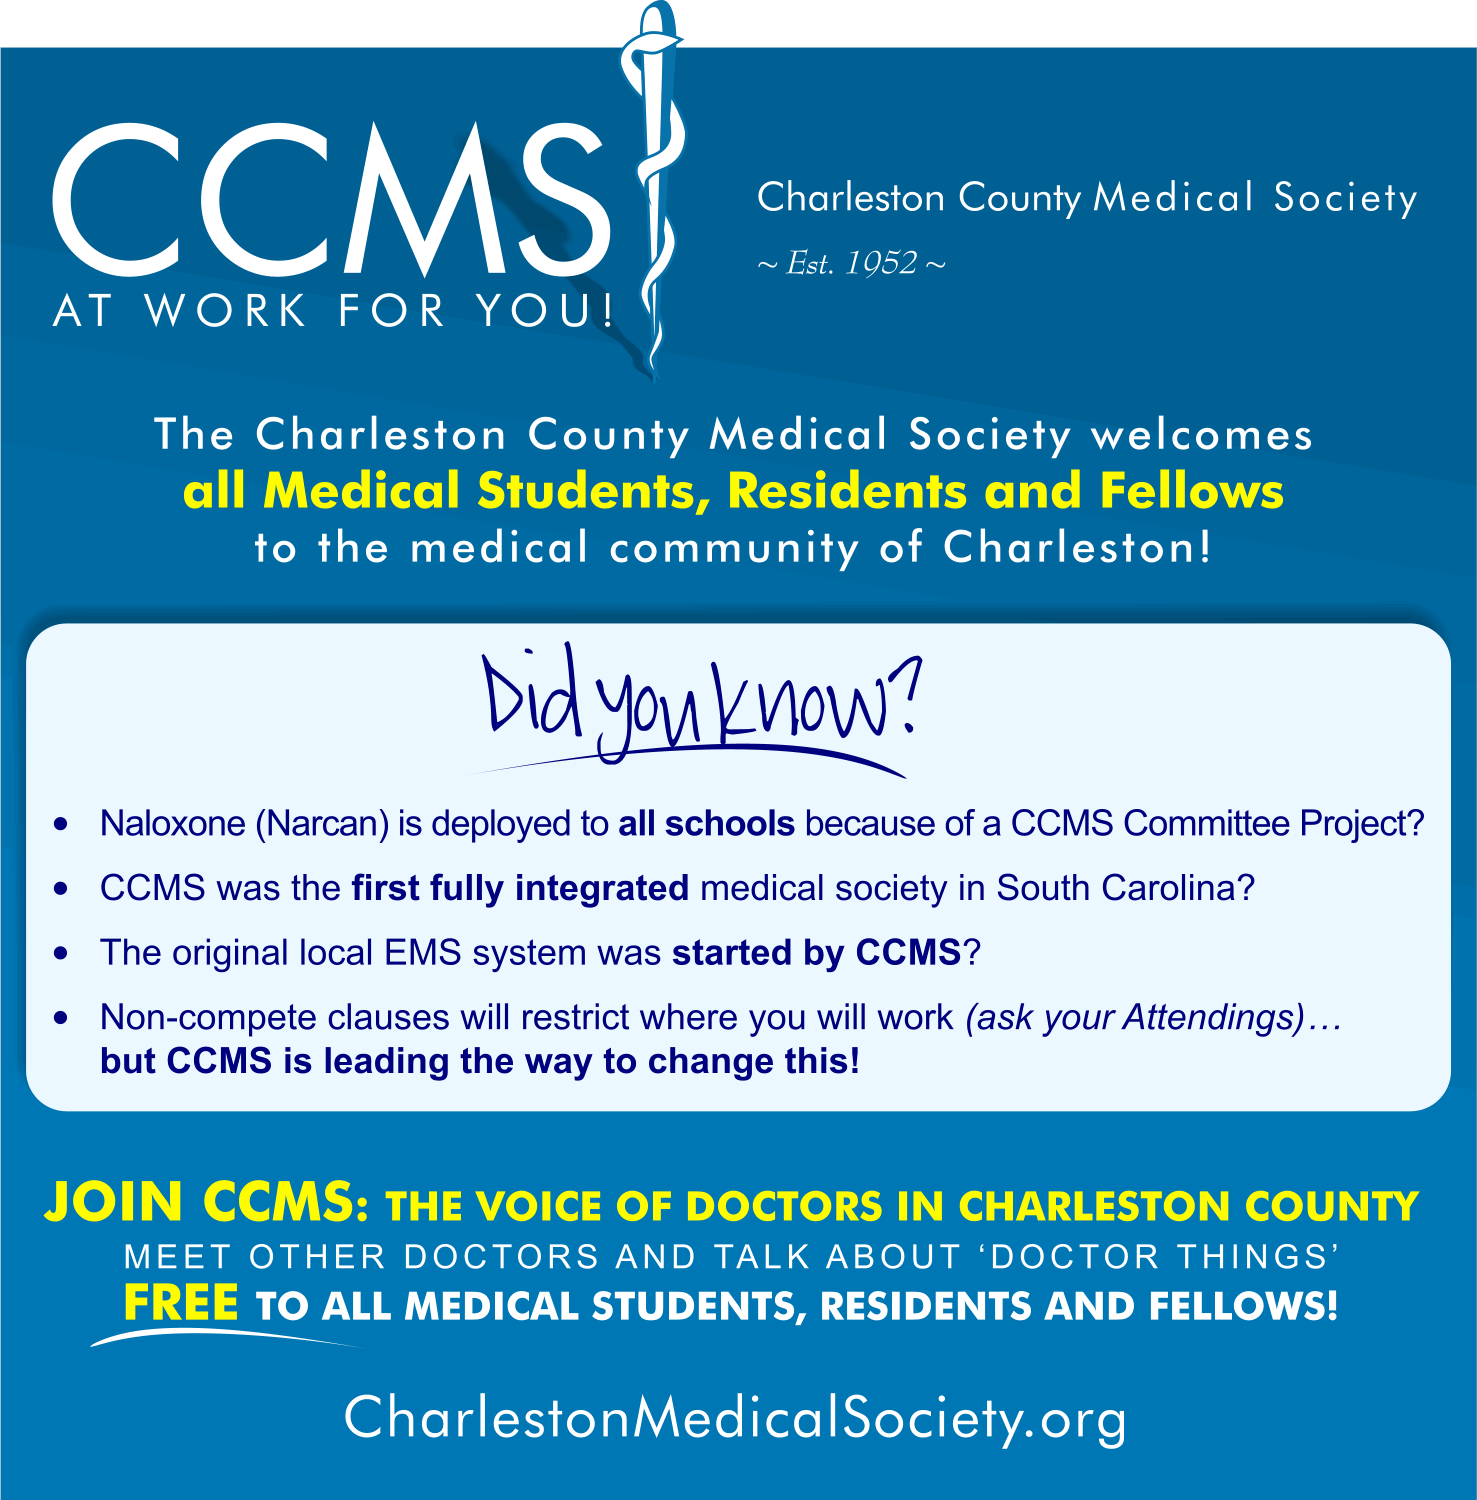 CCMS welcomes medical students, residents and fellows to join for free.